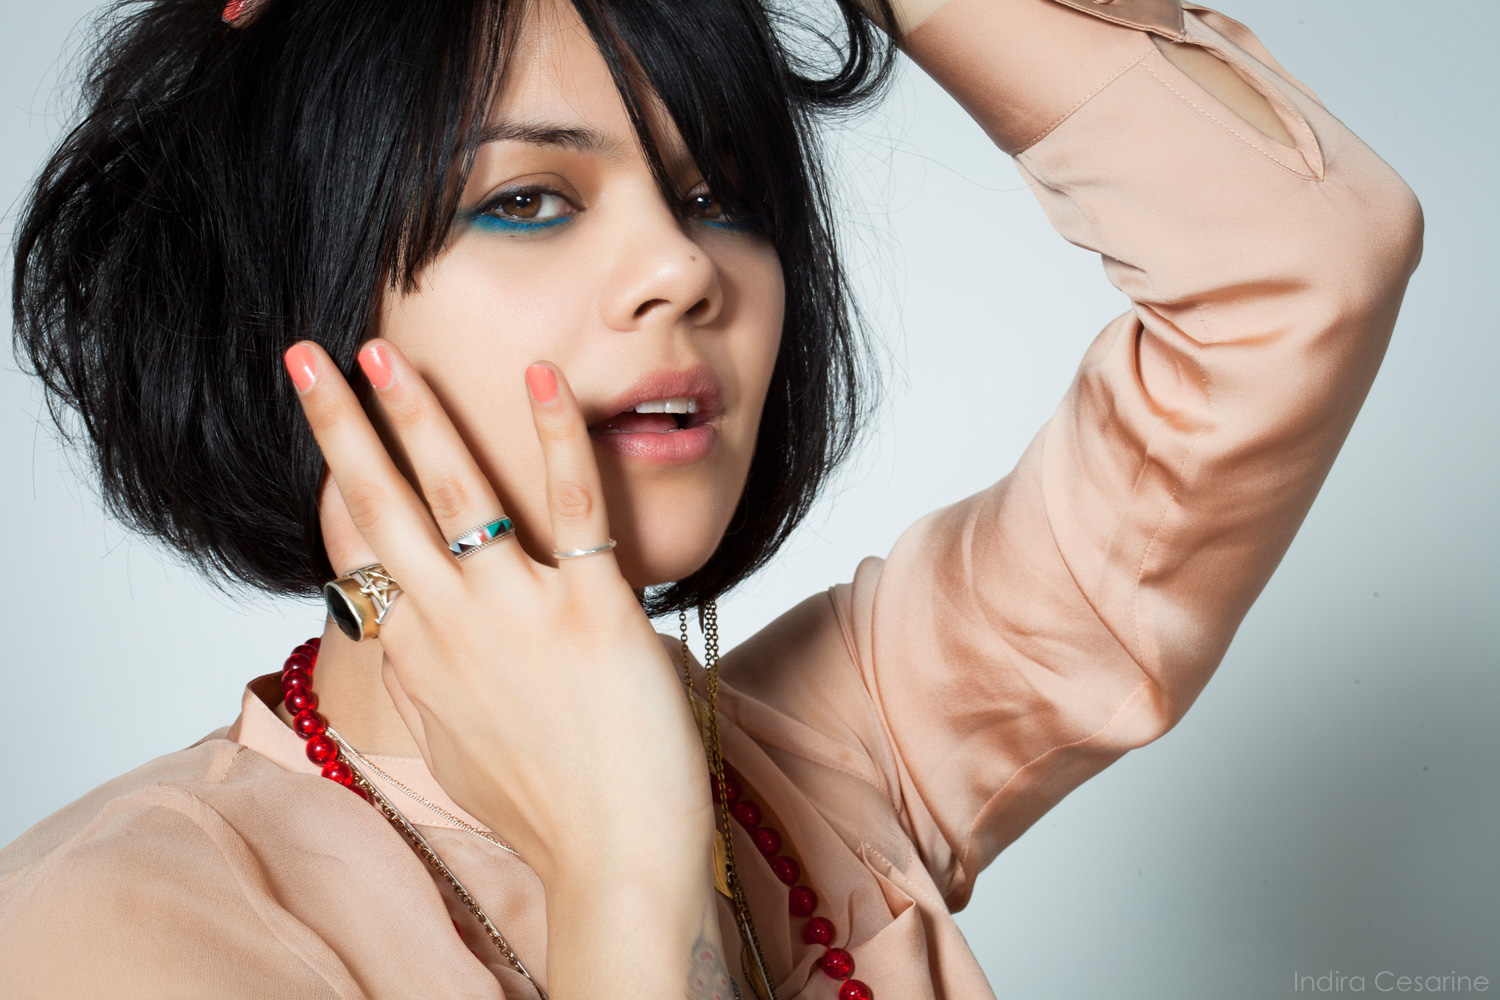 Bat-For-Lashes@Indira-Cesarine-24.jpg